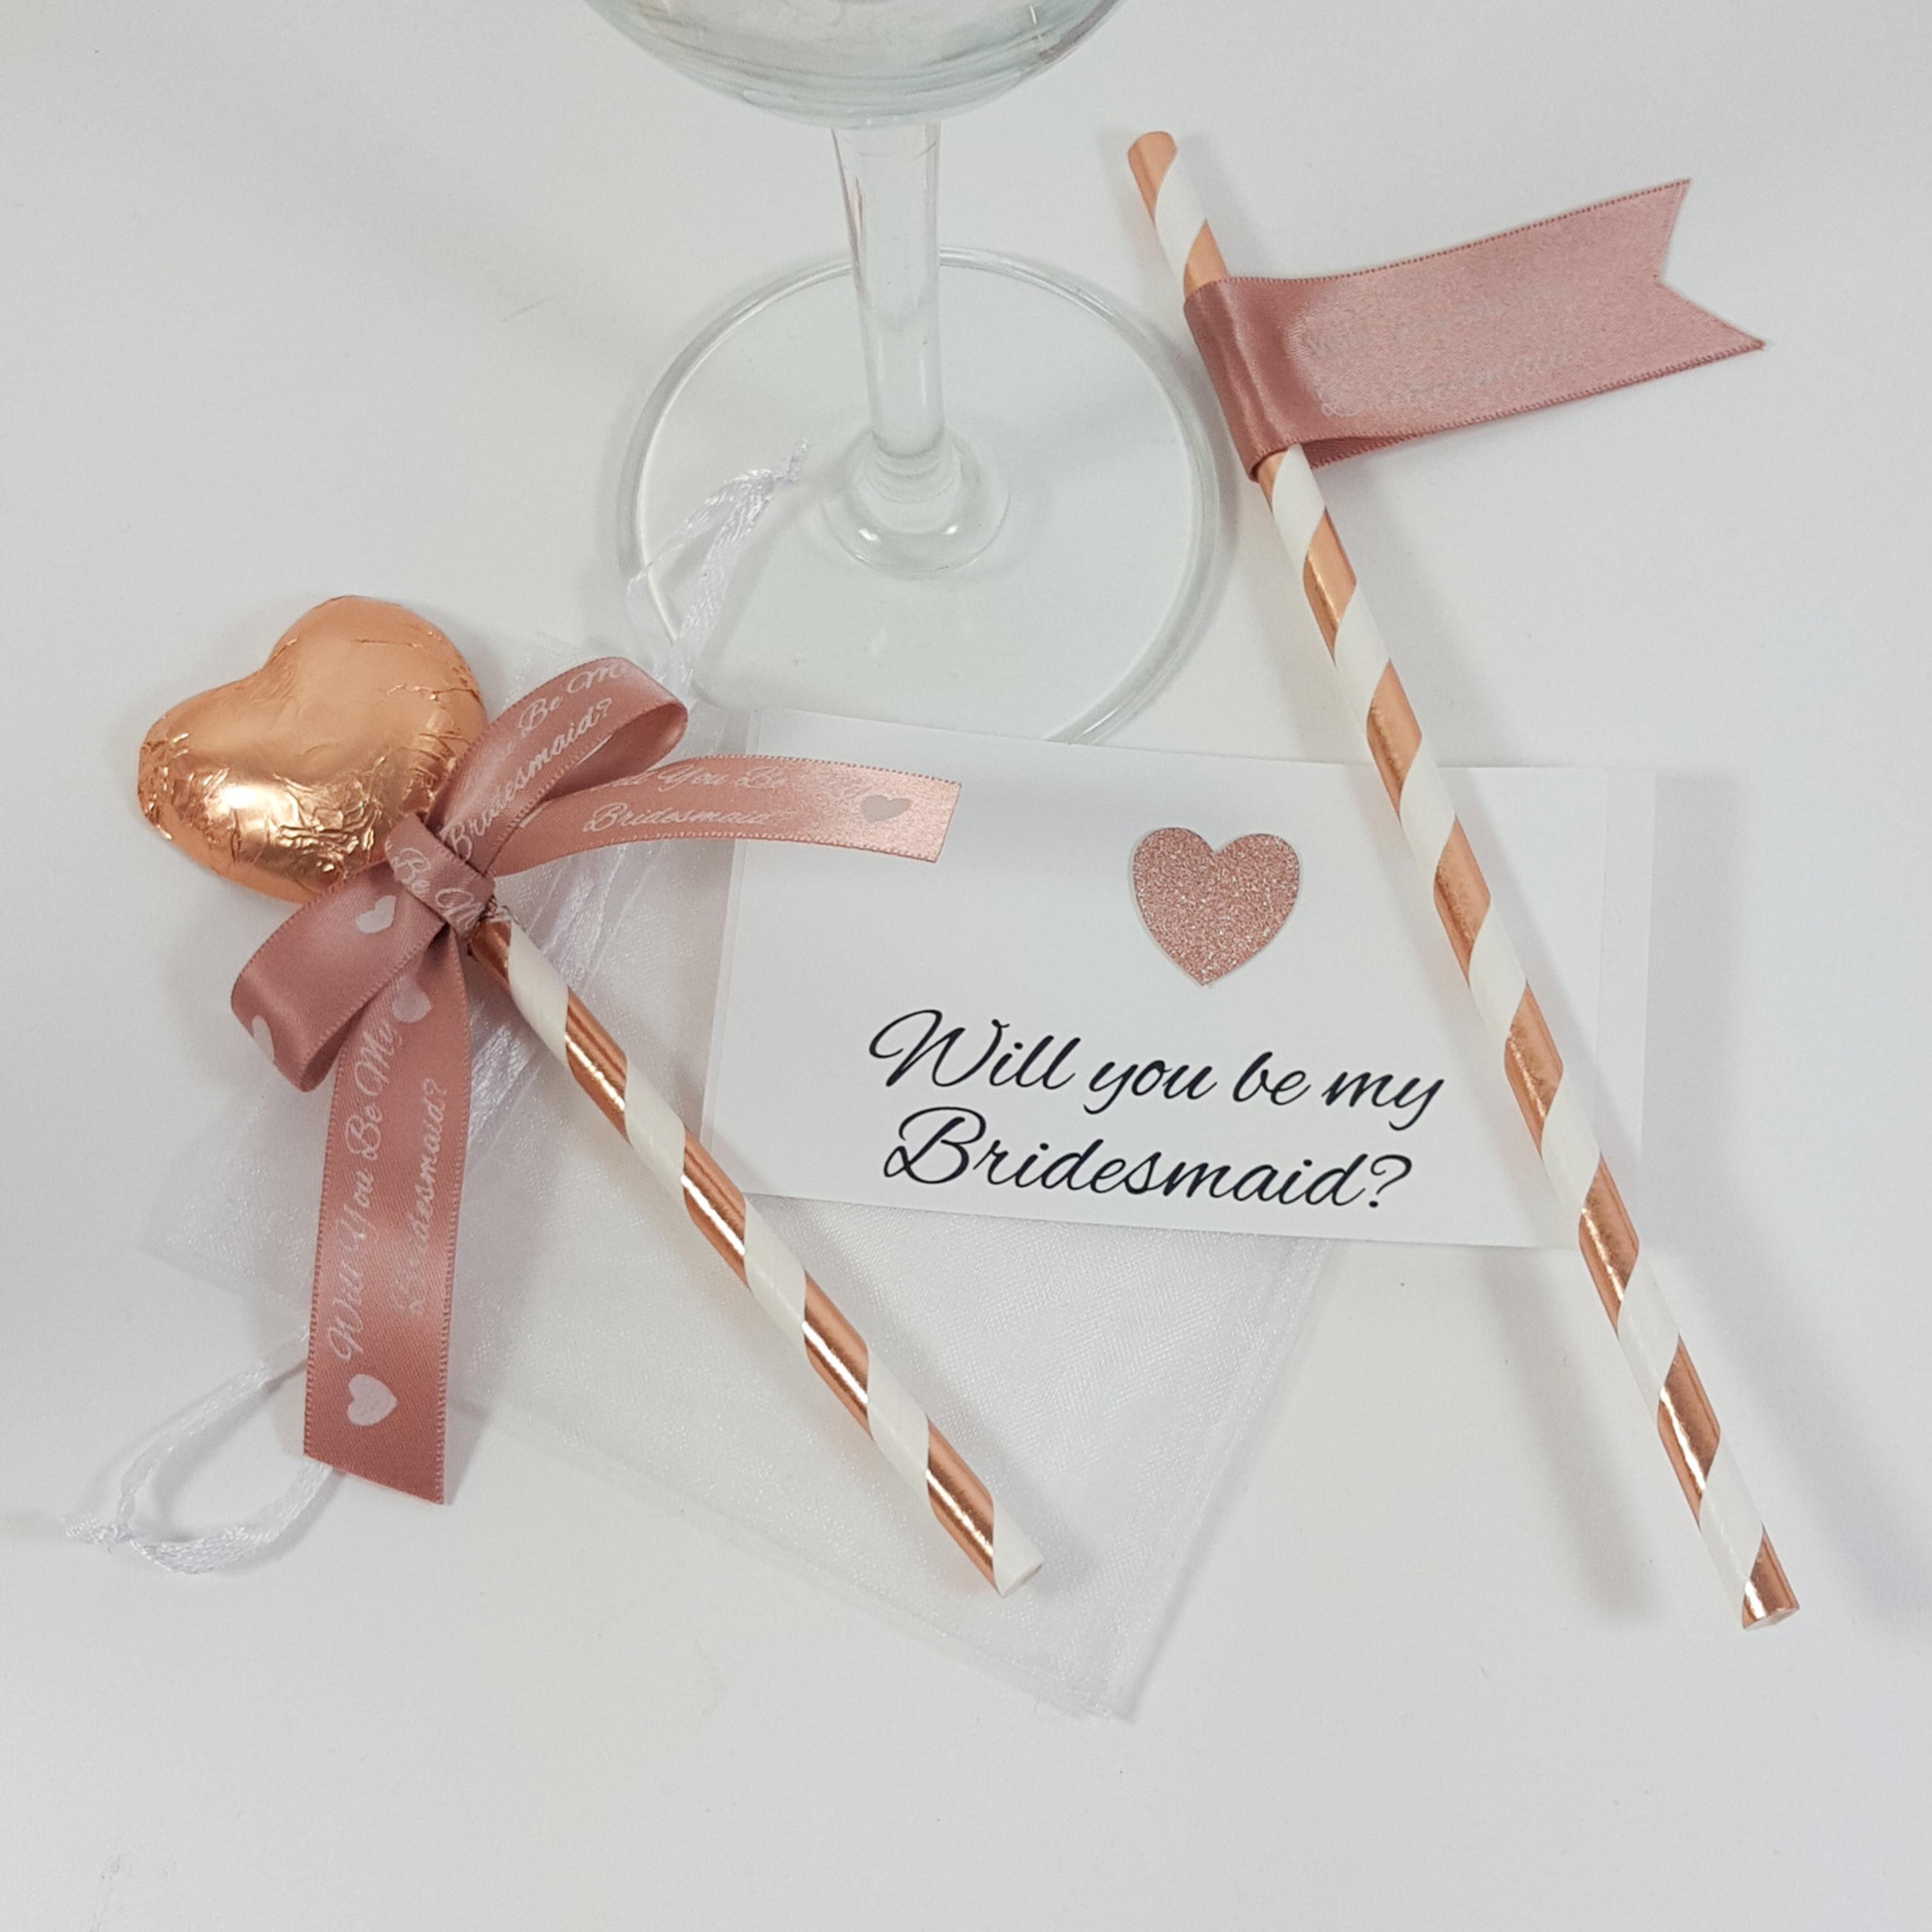 Will you be my bridesmaid rose gold mini wine bottle gift set option